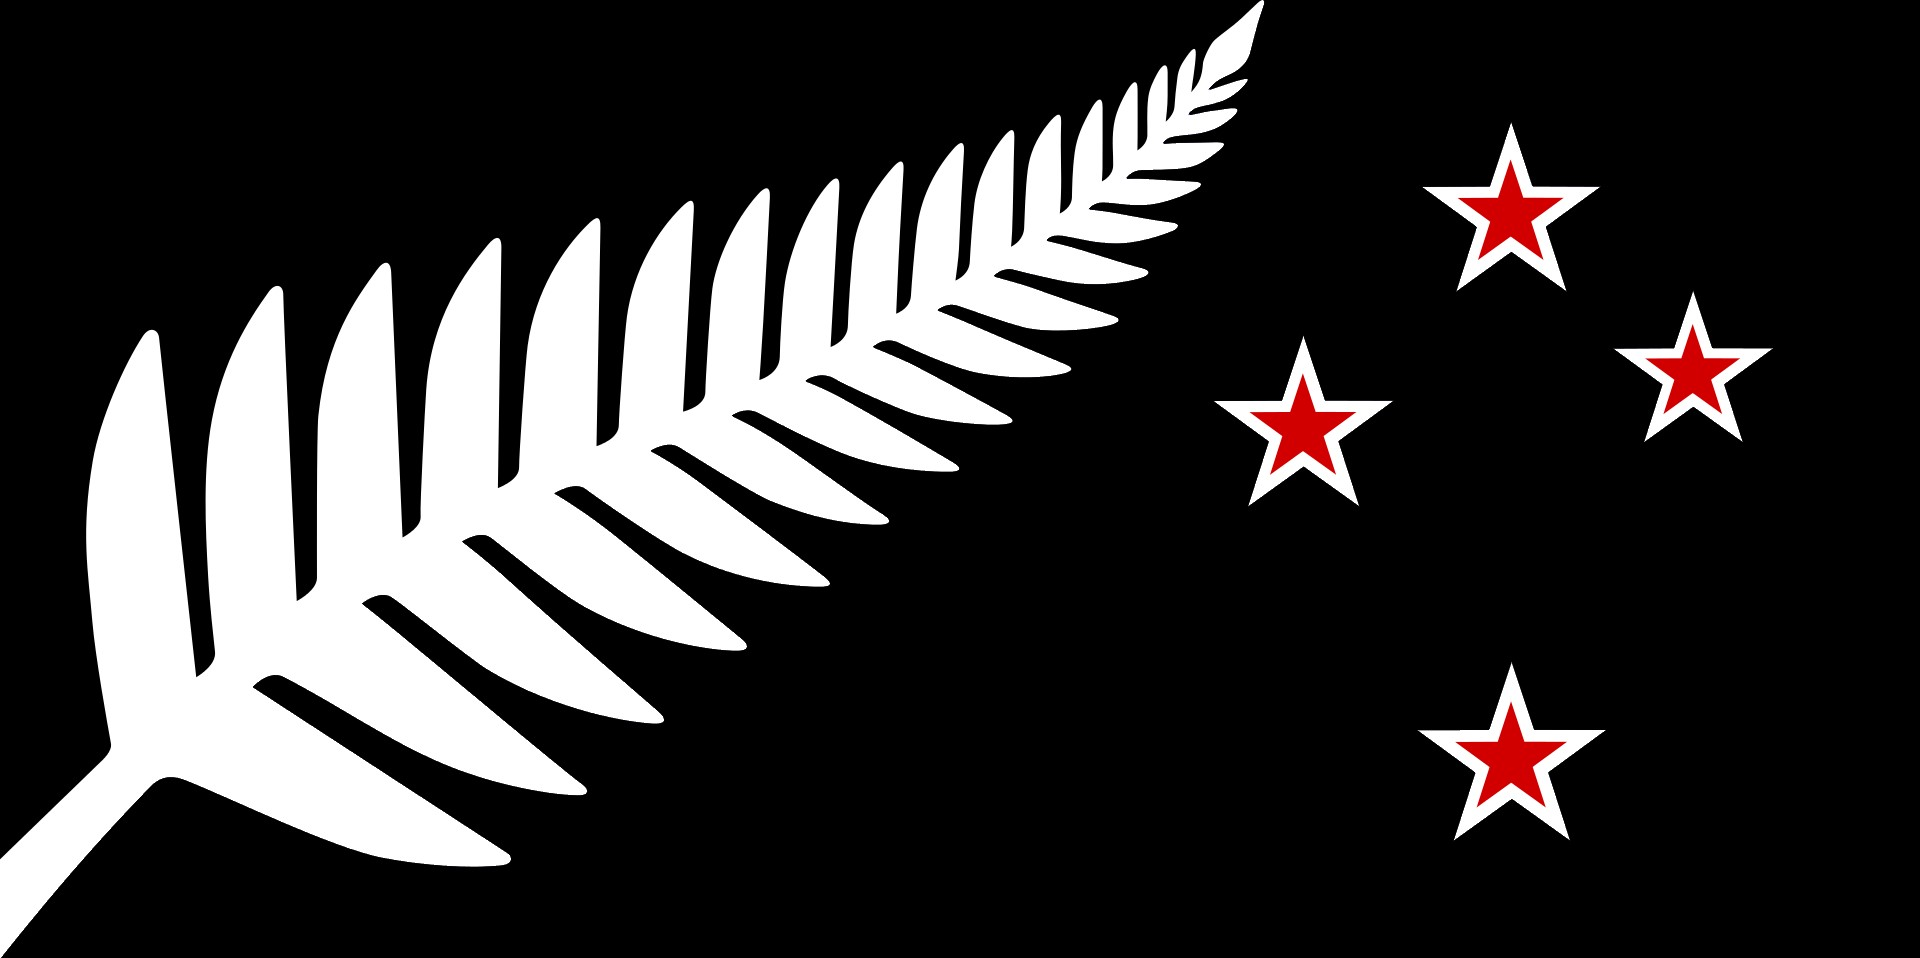 New Zealand Flag TL-191.jpg